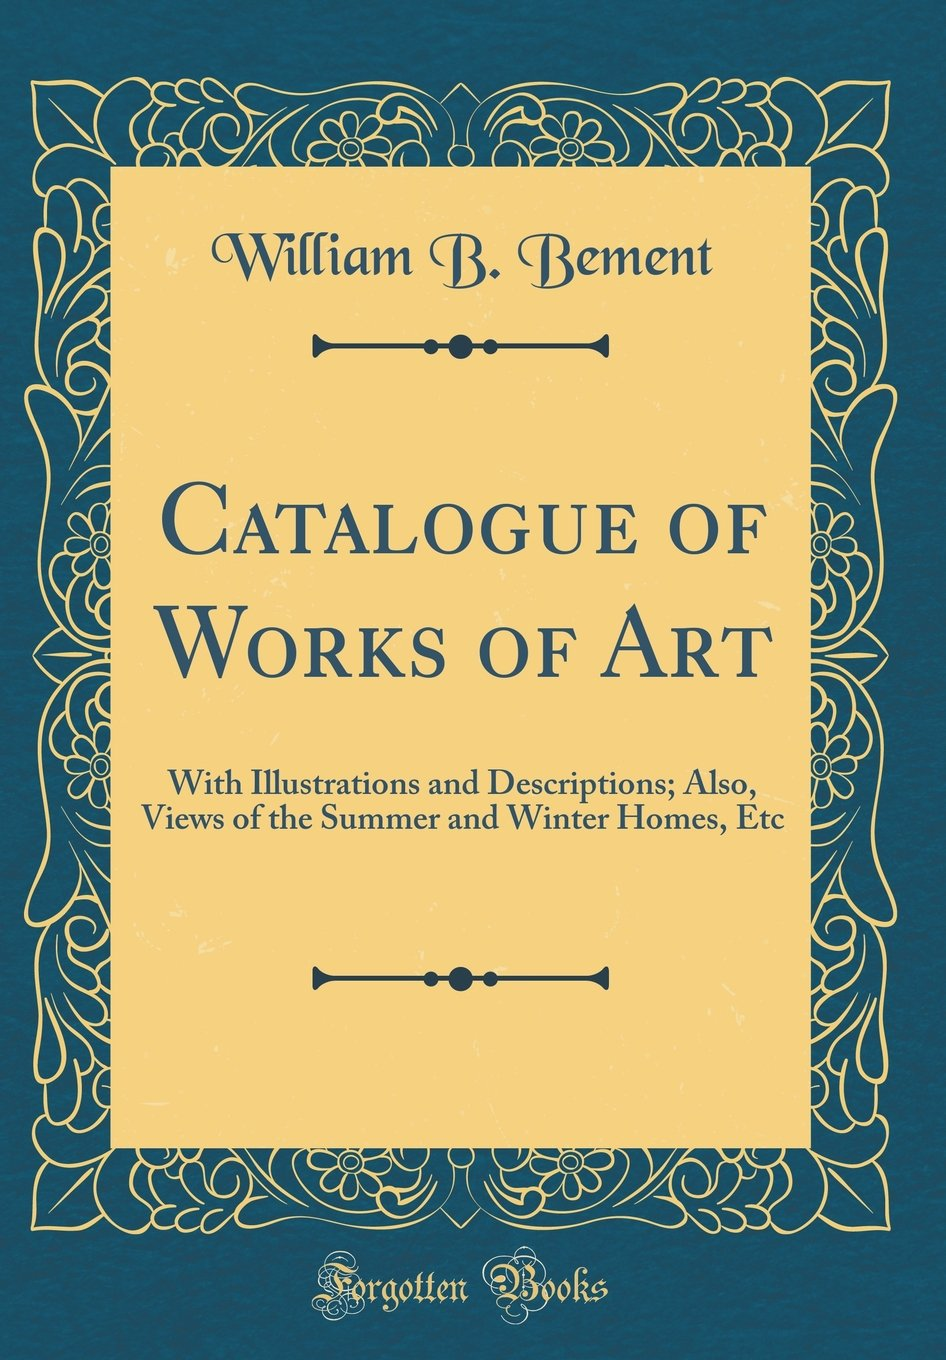 Catalogue of Works of Art: With Illustrations and Descriptions; Also, Views of the Summer and Winter Homes, Etc (Classic Reprint) pdf